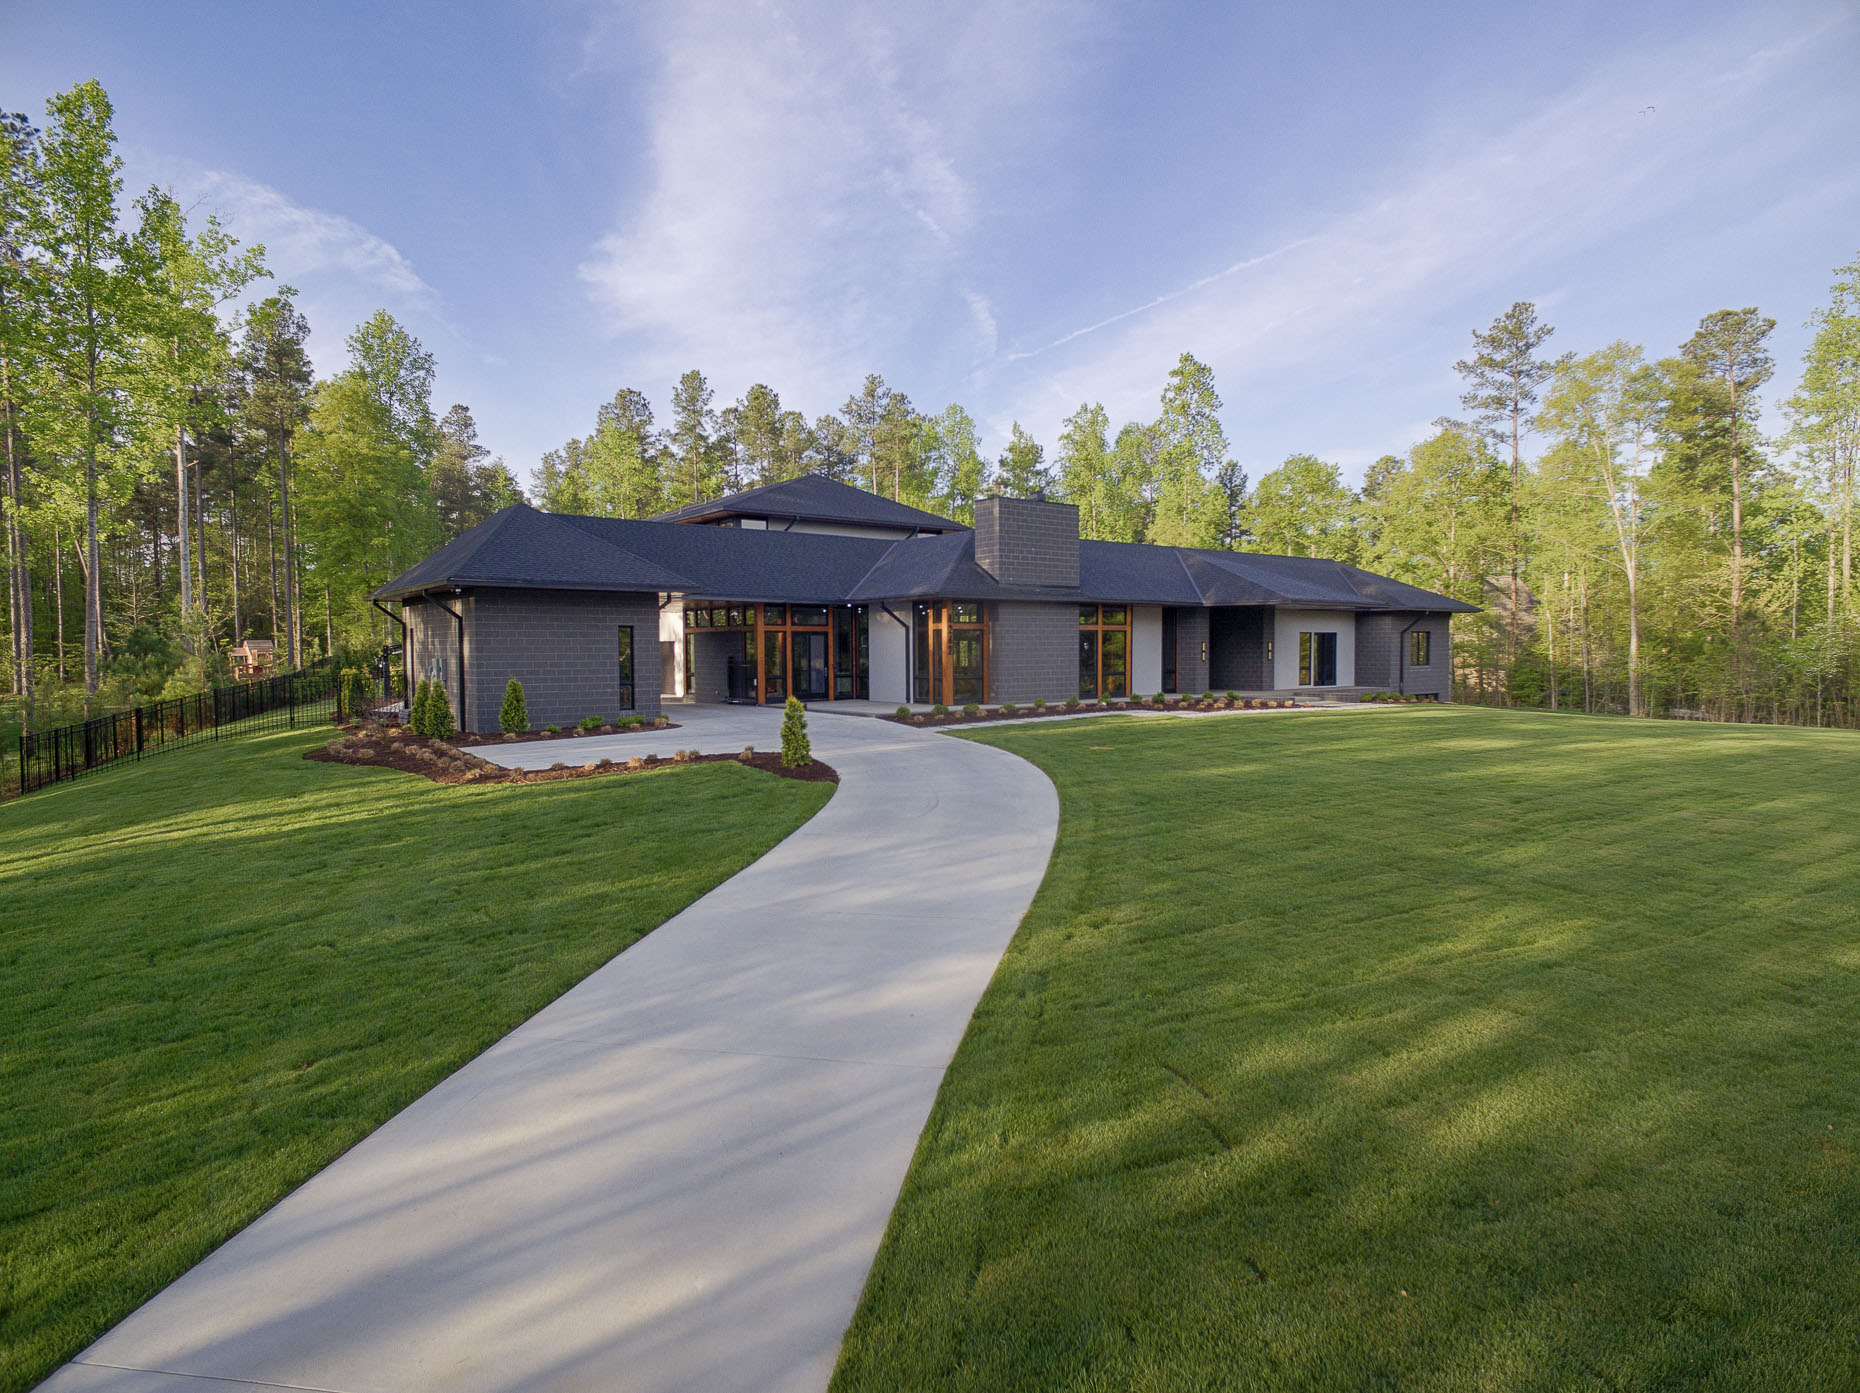 Lake Wylie Private Residence by Studio MM Photographed by Lauren K Davis & Brad Feinknopf